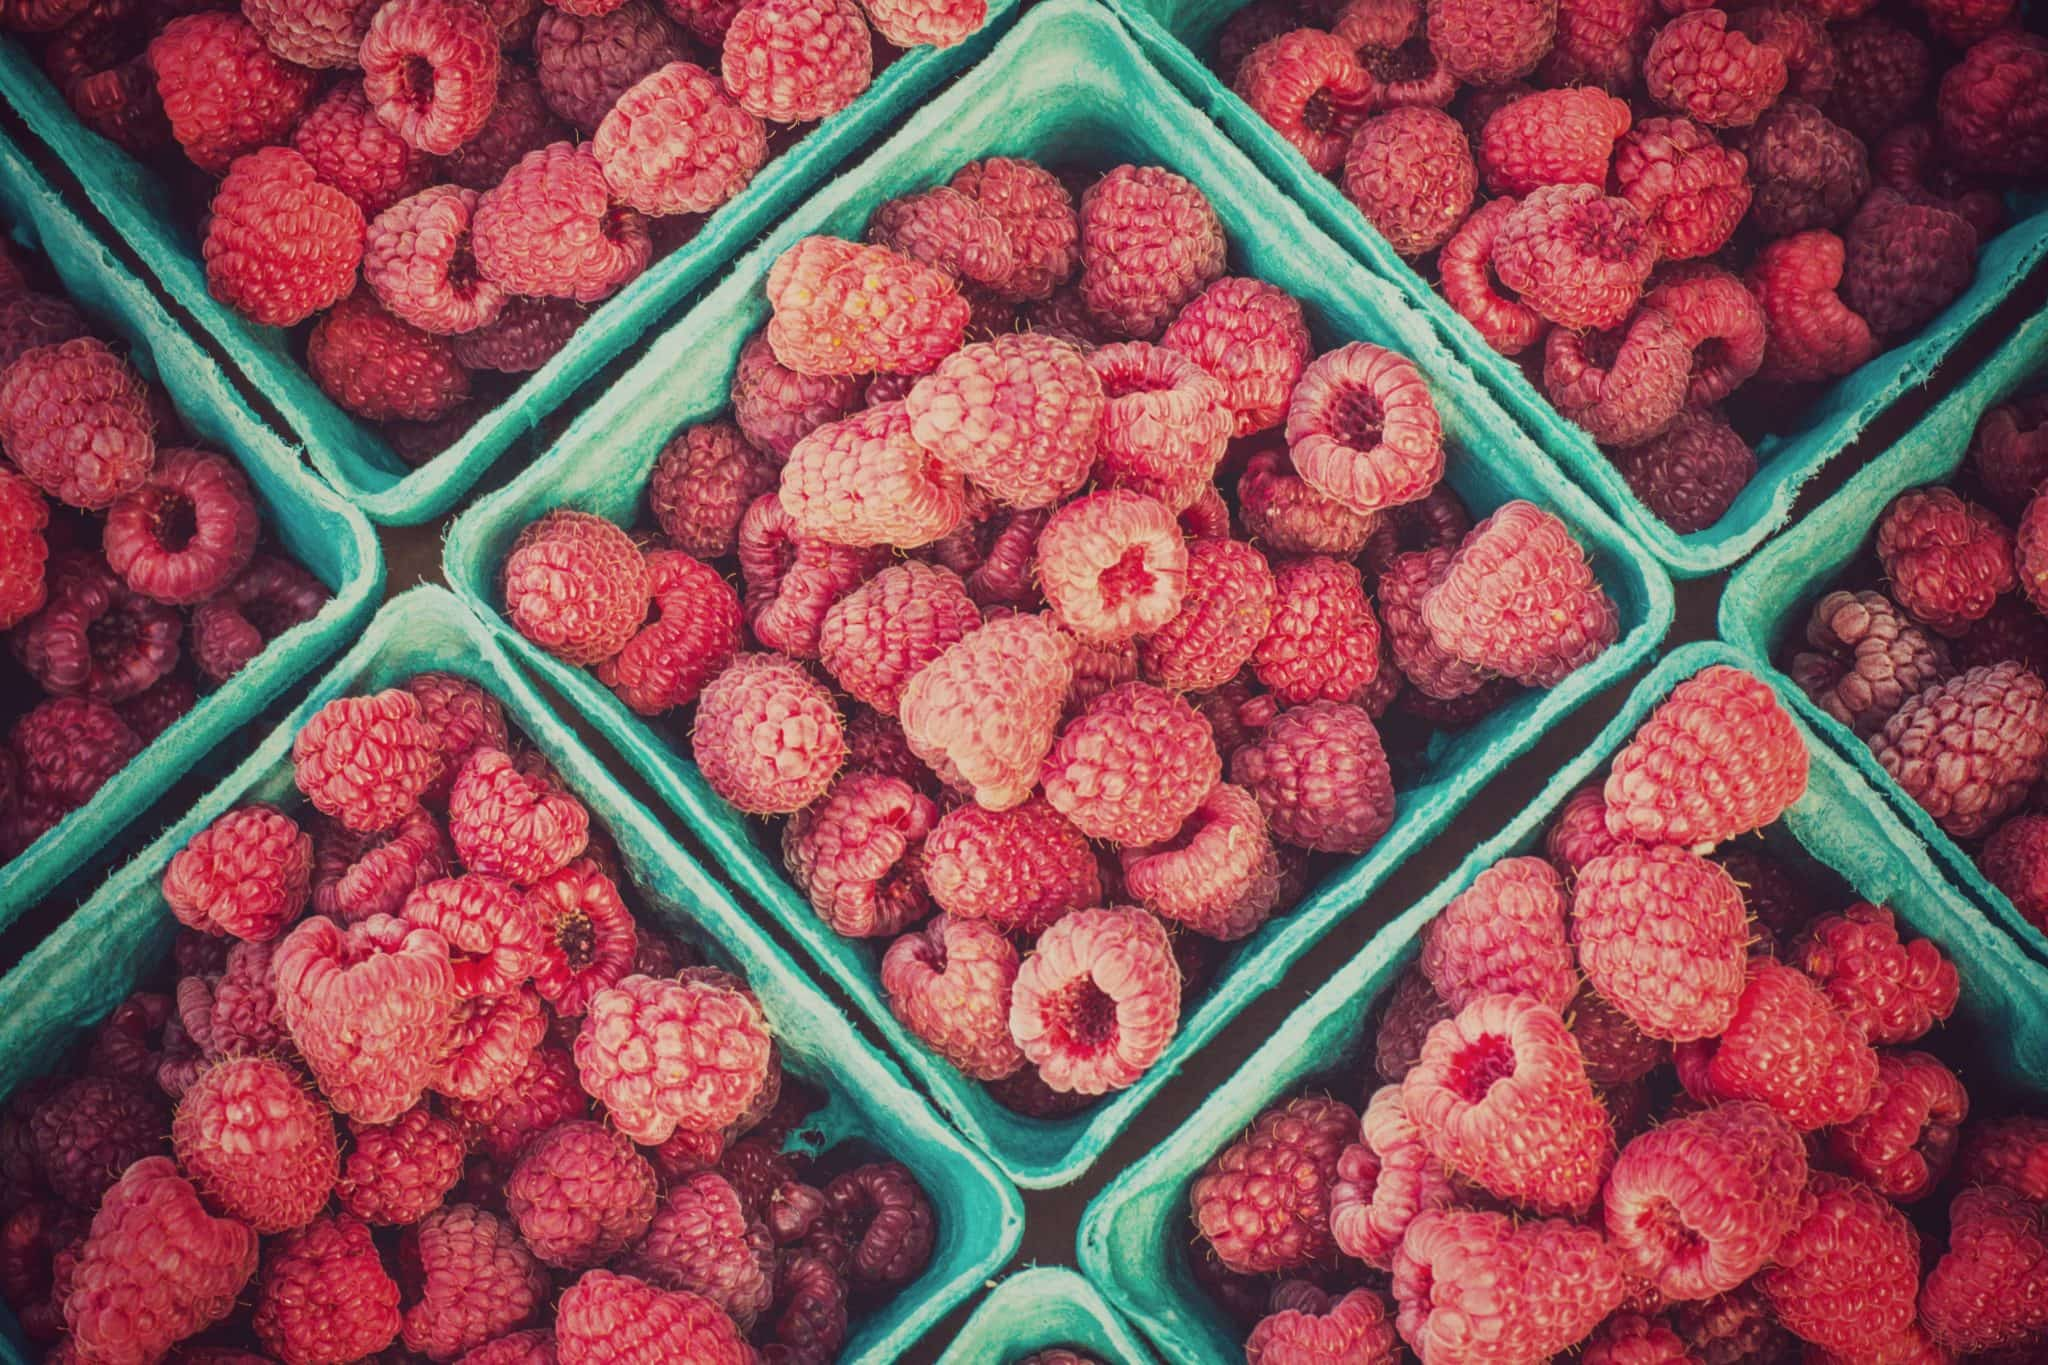 Depression: Foods that Boost Mood and Energy - The Blurt Foundation